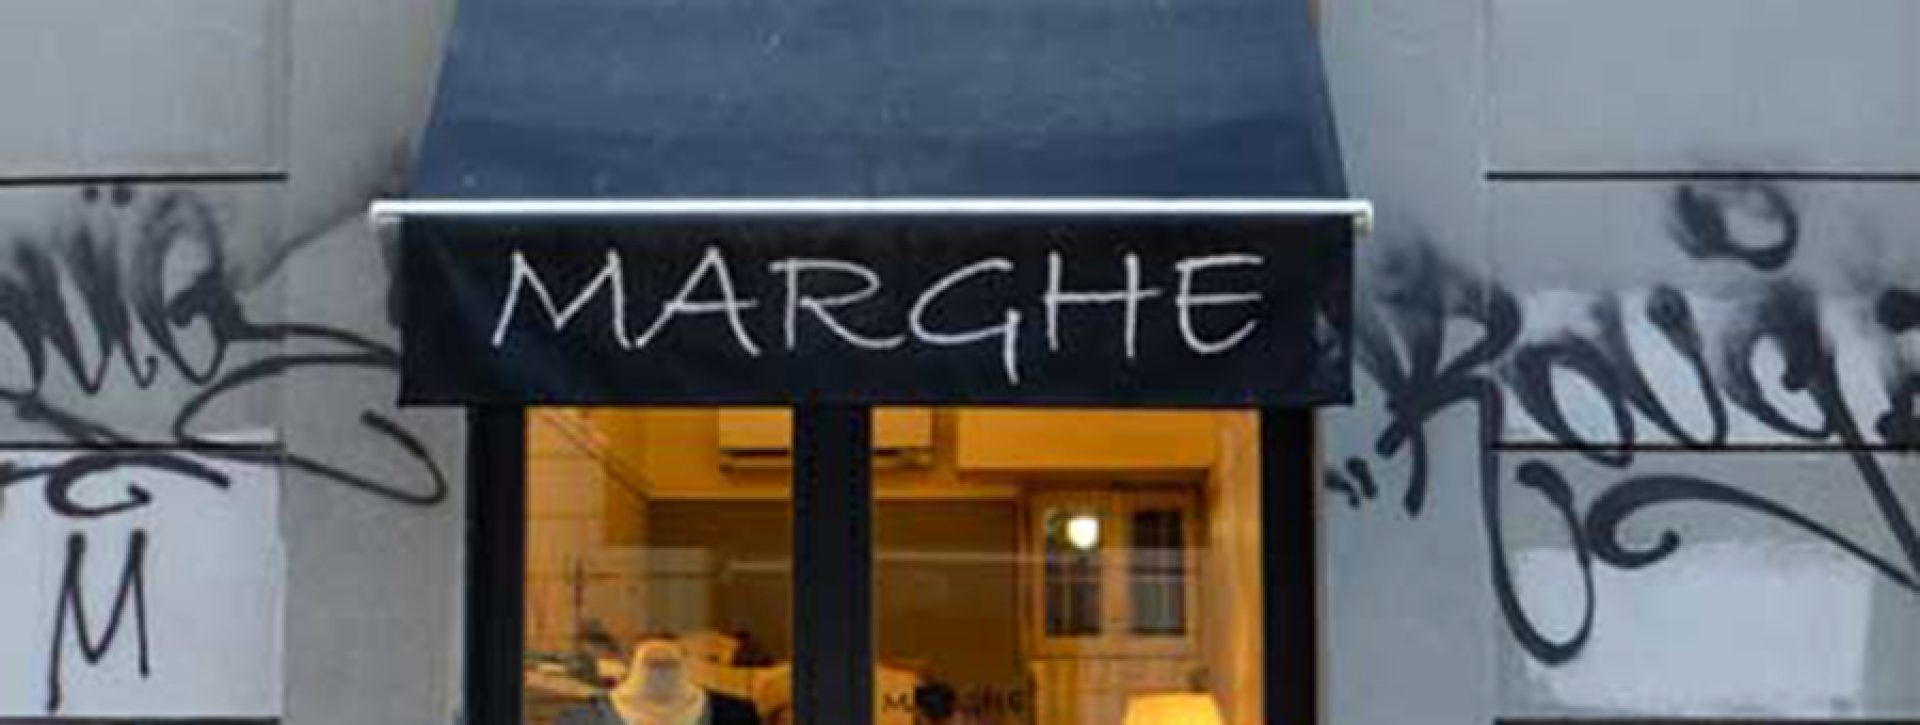 home_marghe